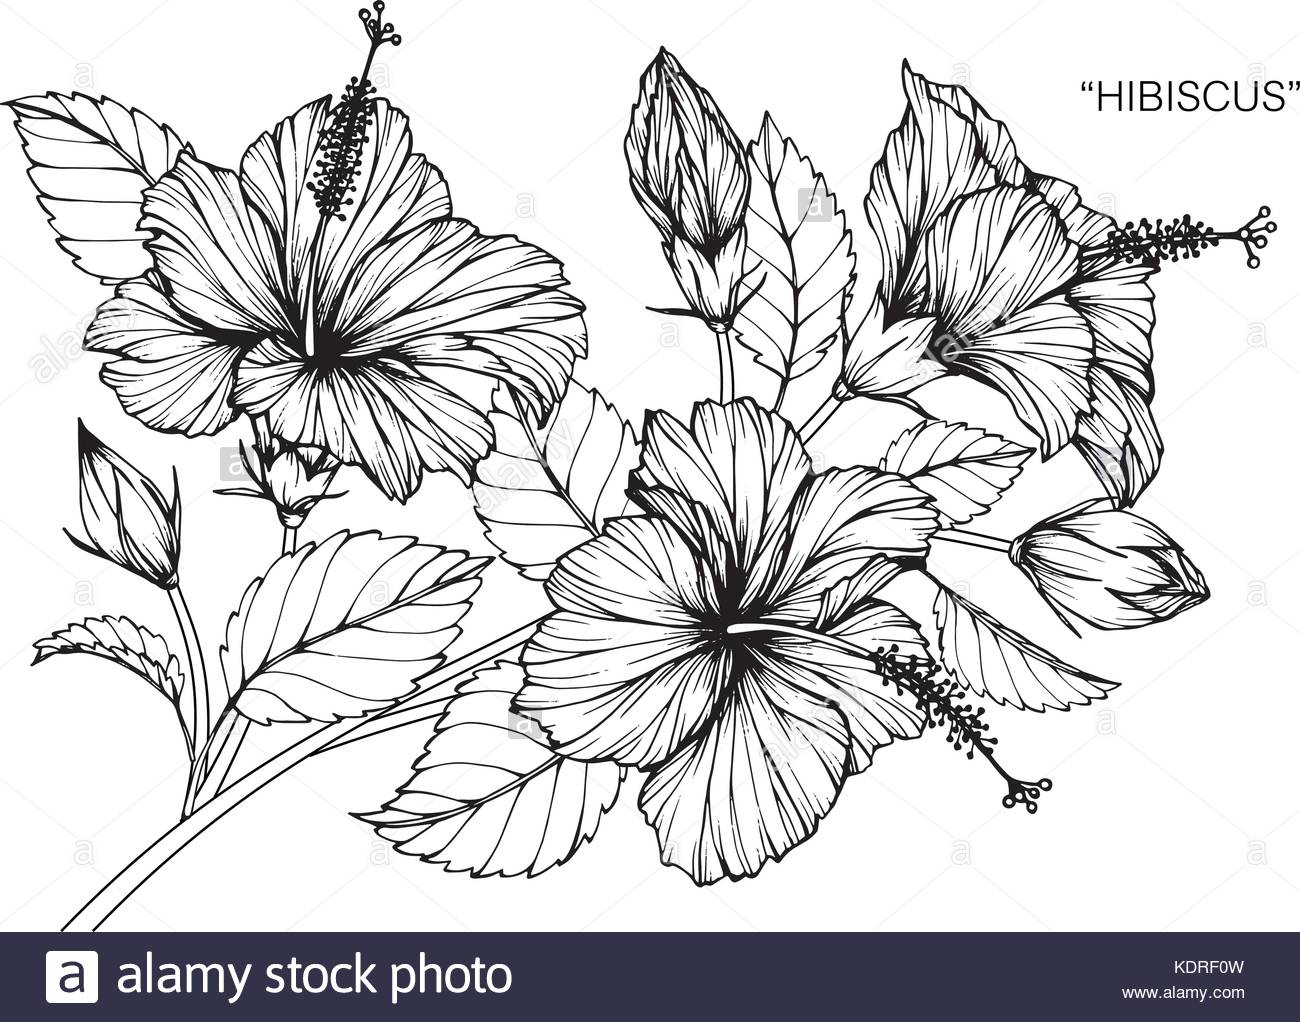 1300x1022 Hibiscus Flower Drawing Cut Out Stock Images Amp Pictures